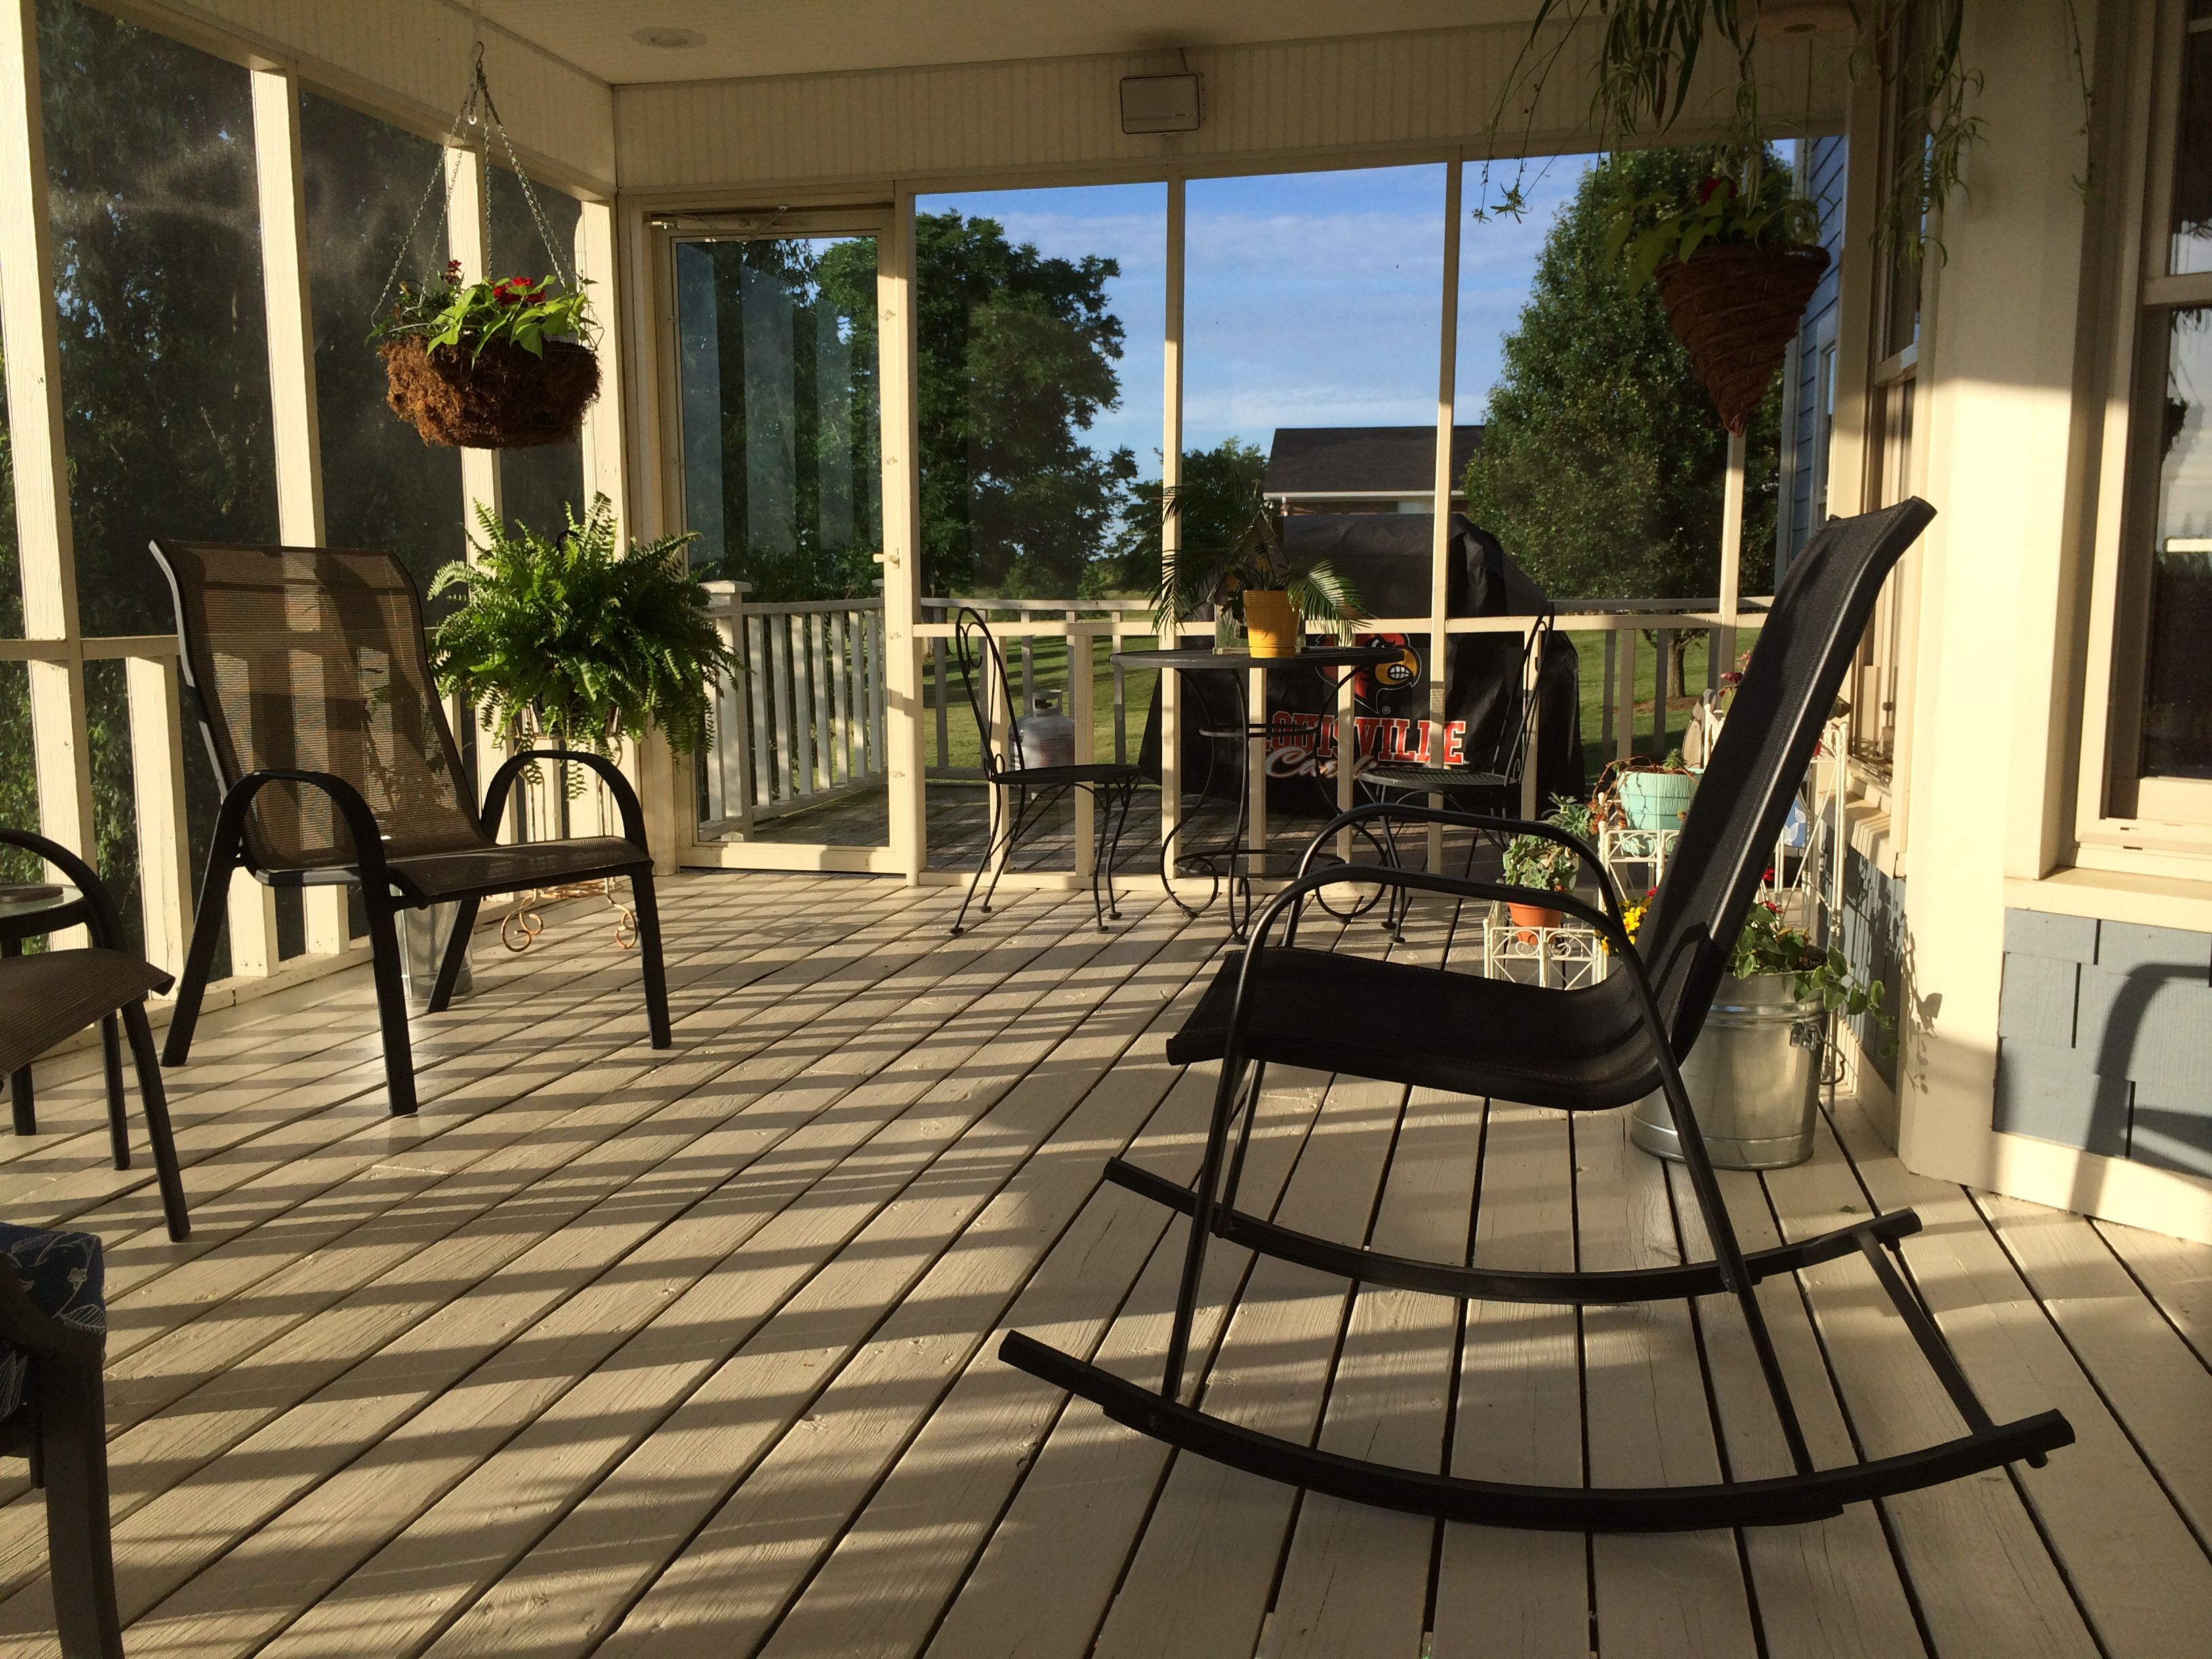 My porch | Outdoor living design, Better homes and gardens ... on My Garden Outdoor Living id=17254